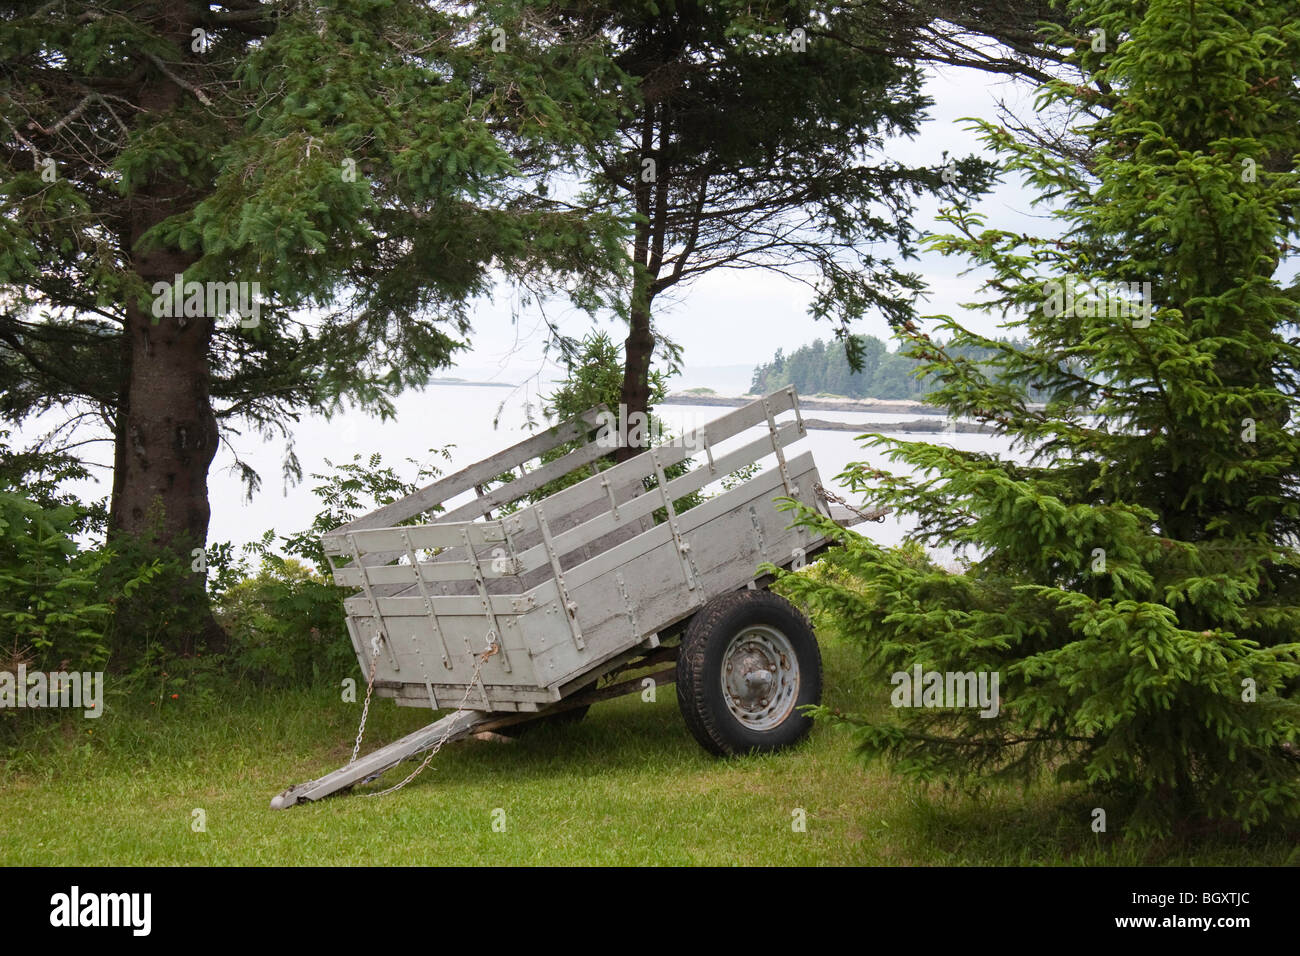 A handy utility trailer - Stock Image